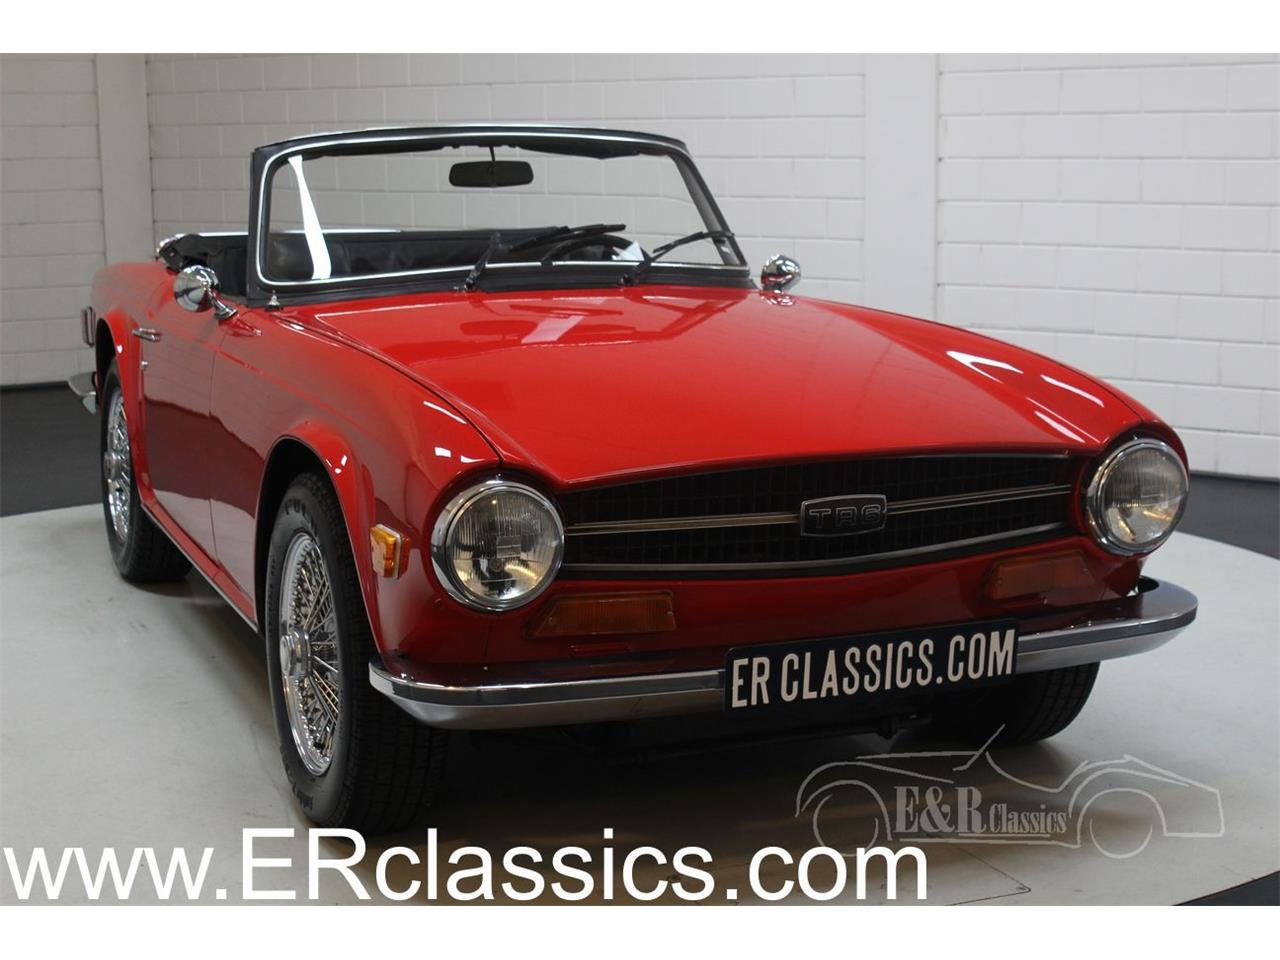 Large Picture of Classic '73 TR6 located in Waalwijk Noord Brabant - $25,800.00 Offered by E & R Classics - PWMQ